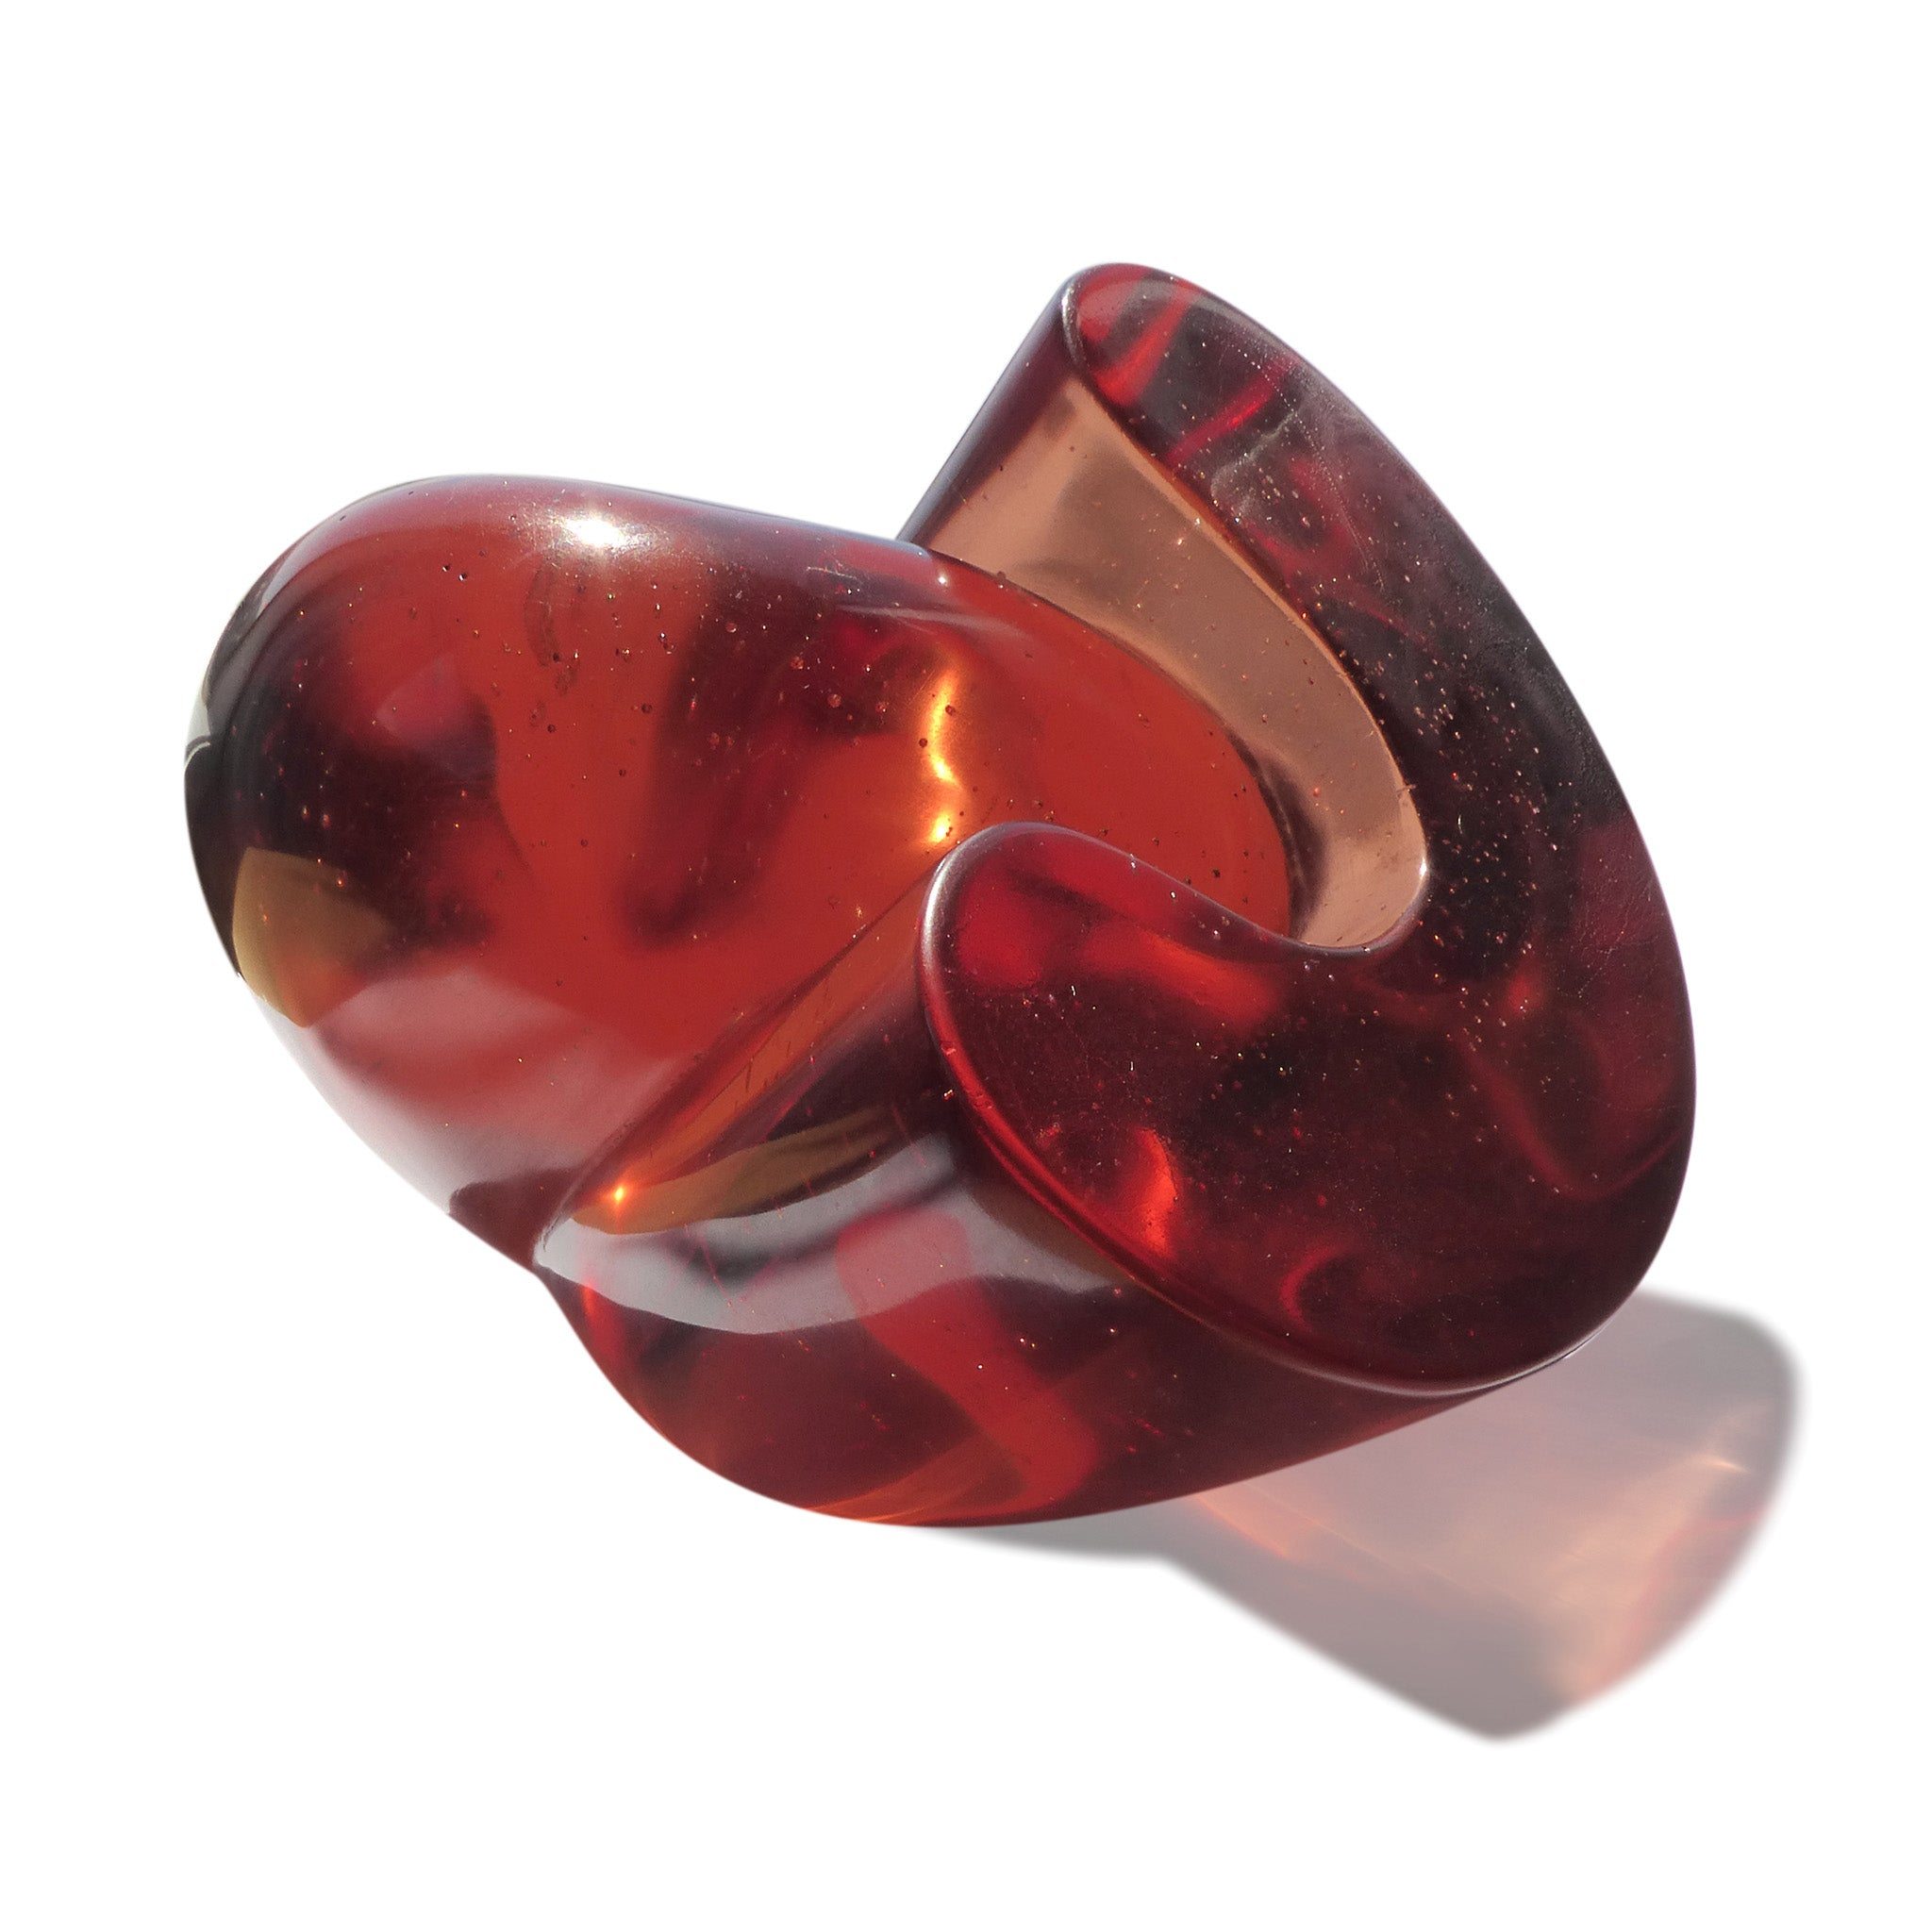 Abstract polished cast glass sculpture of red blood cells by Stephen Williams | New Zealand.